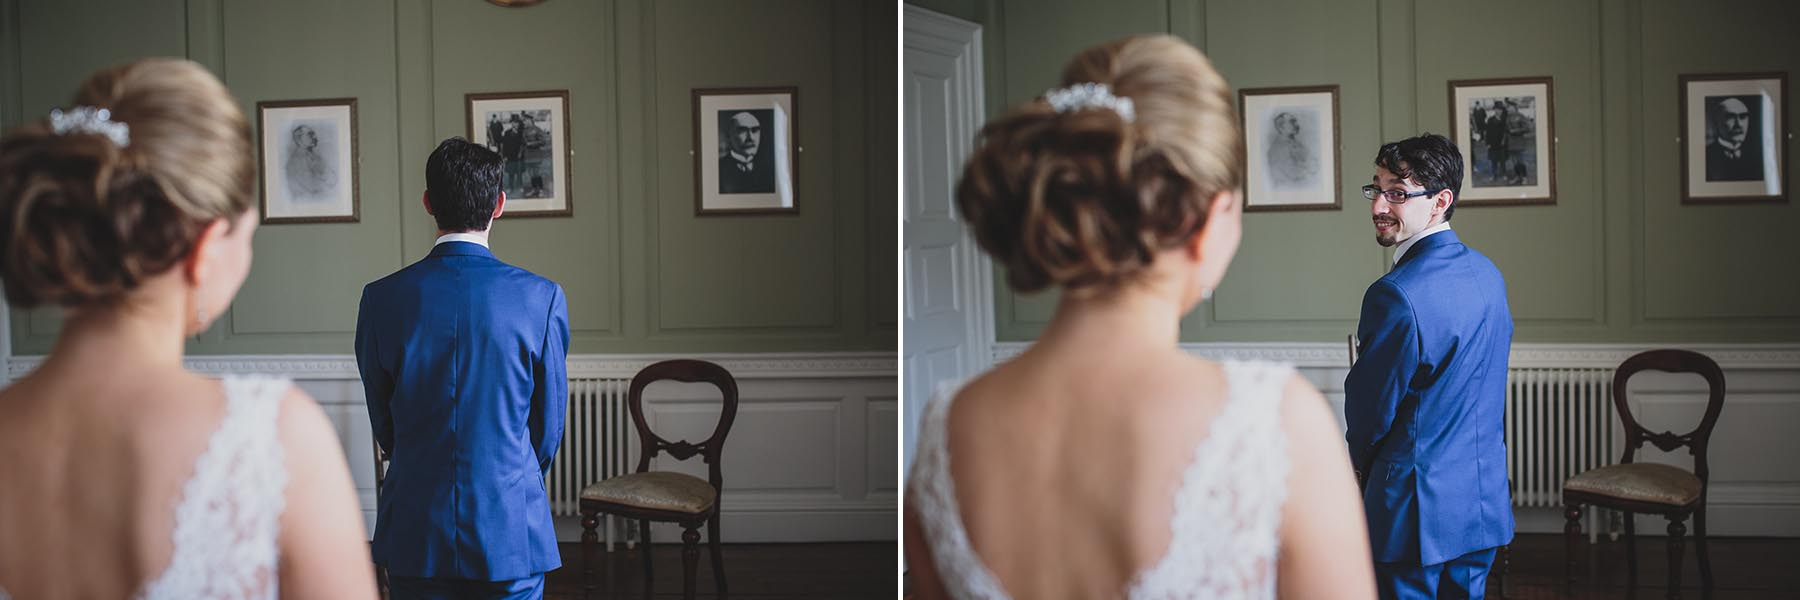 Stanmer-House-Wedding-Photography-Fazackarley-033